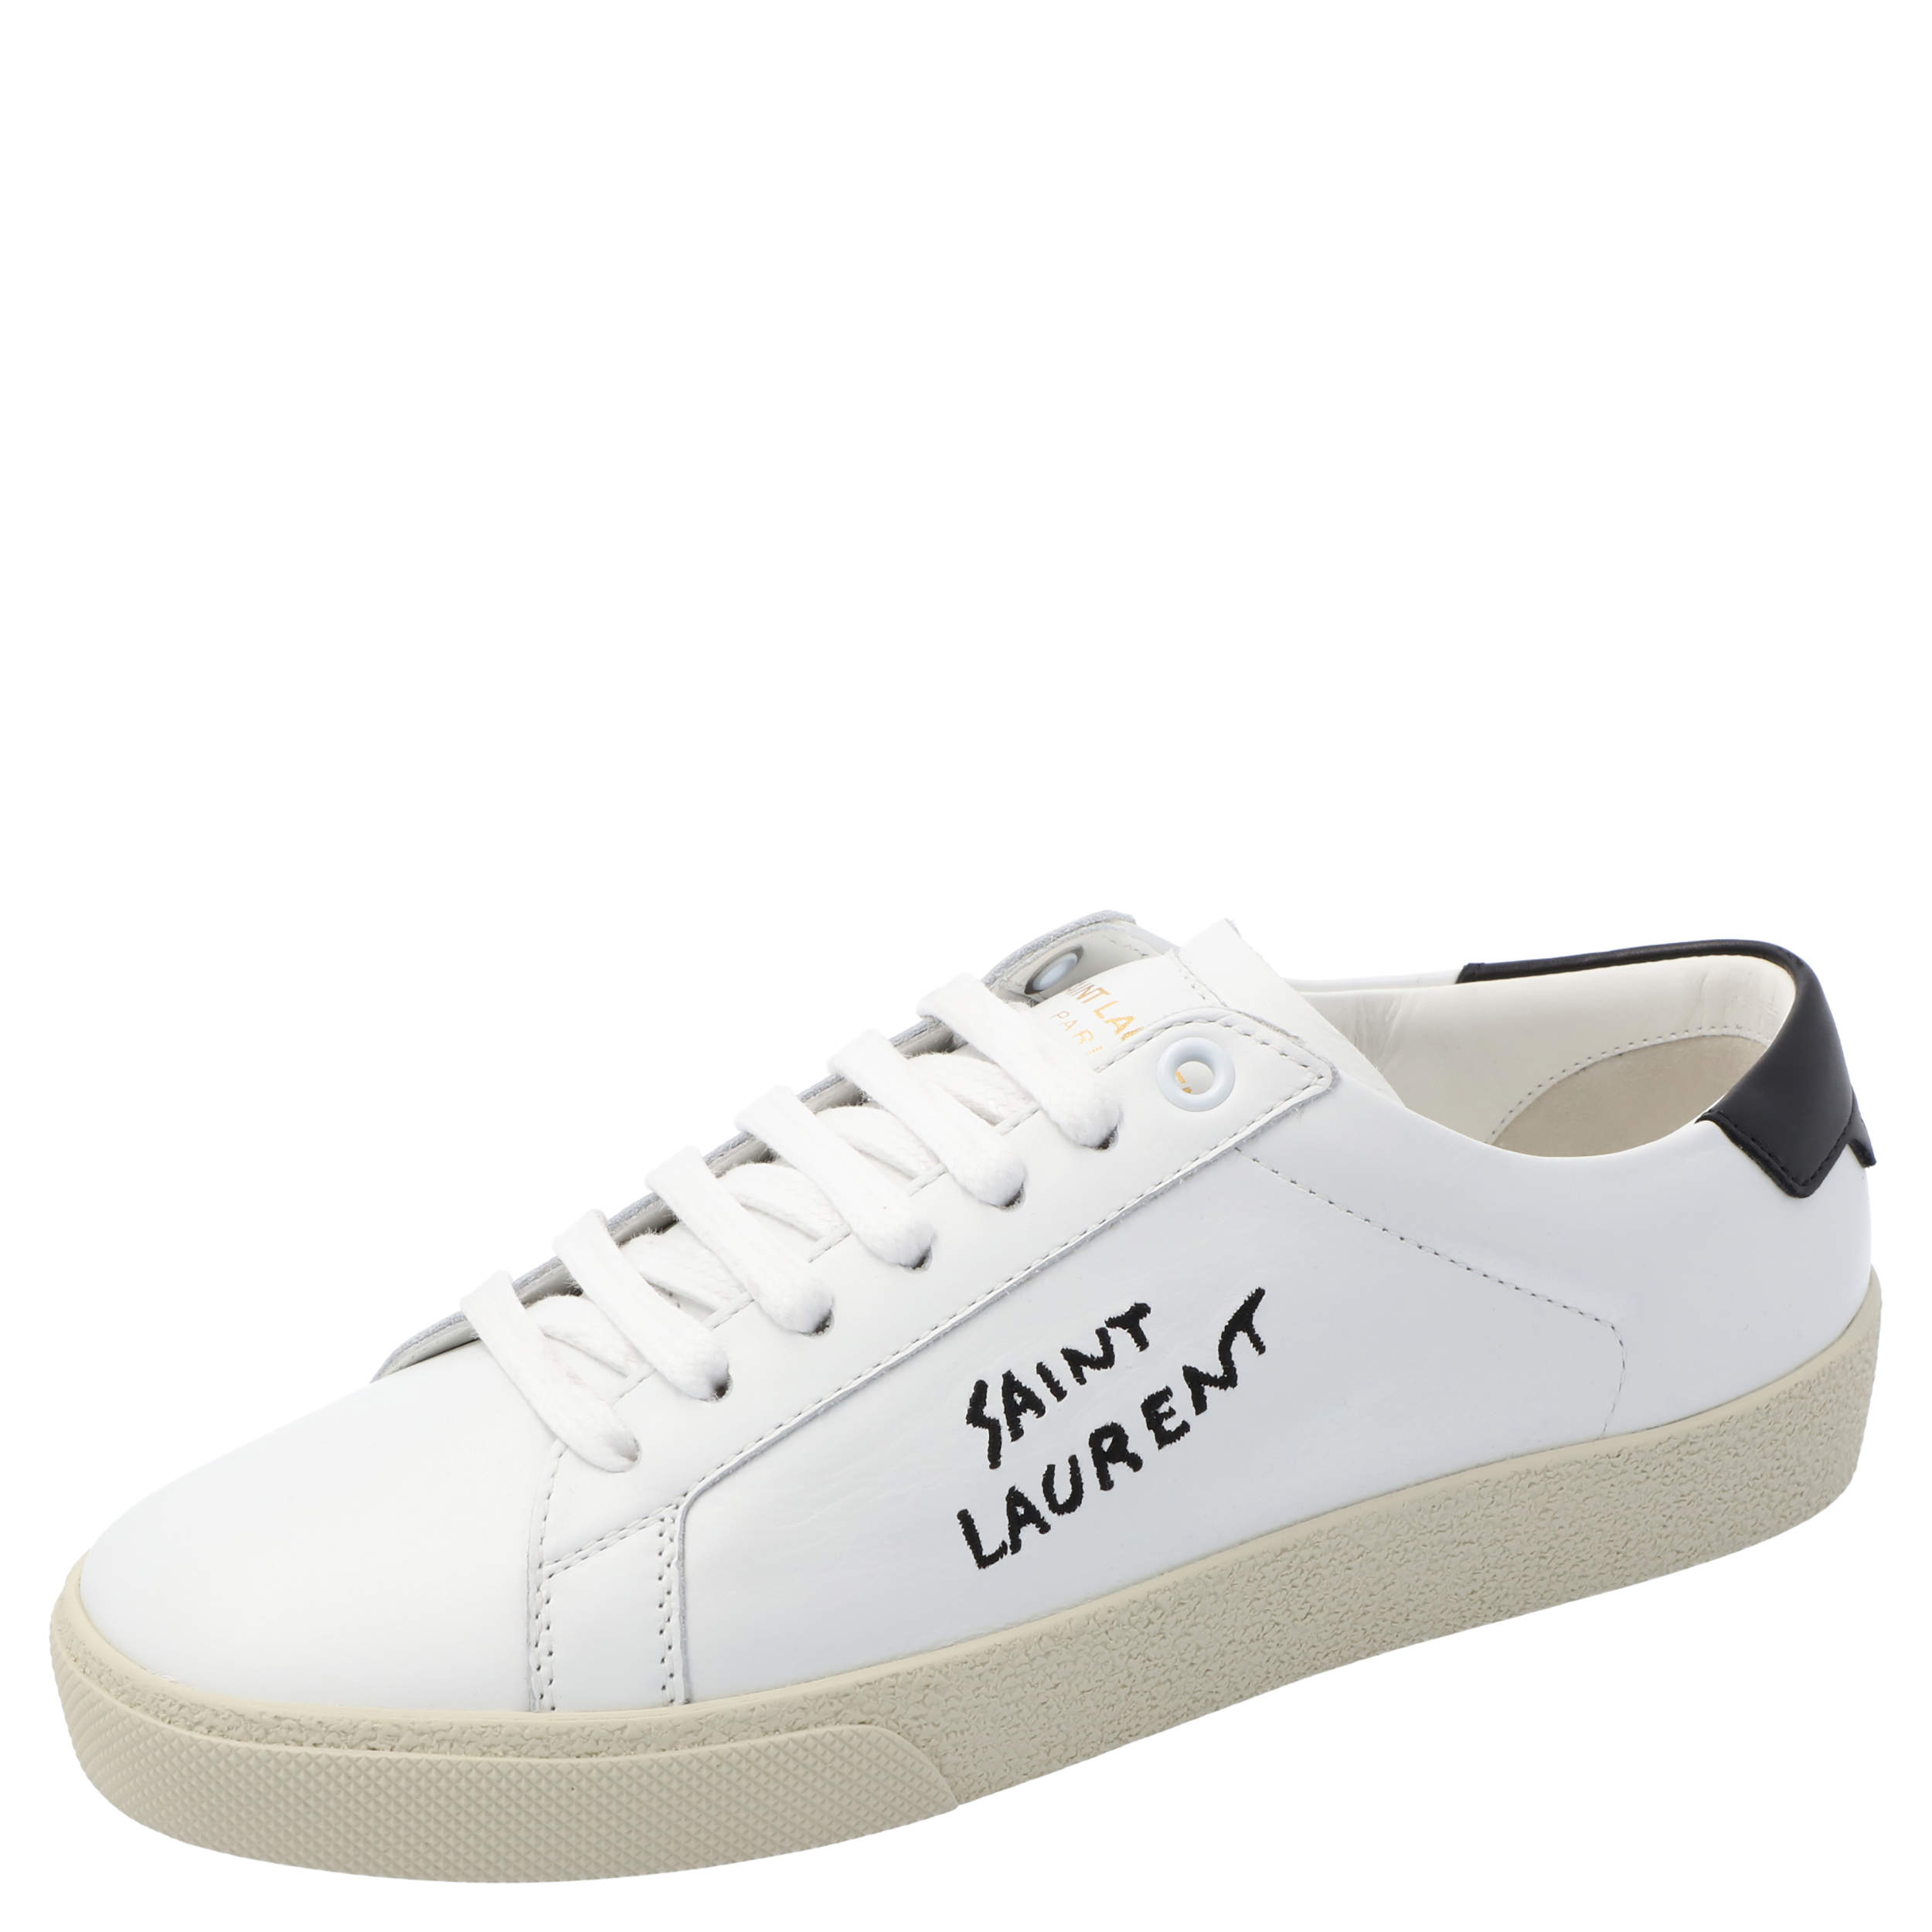 Saint Laurent White/Black Leather Court Classic Sneakers Size EU 37